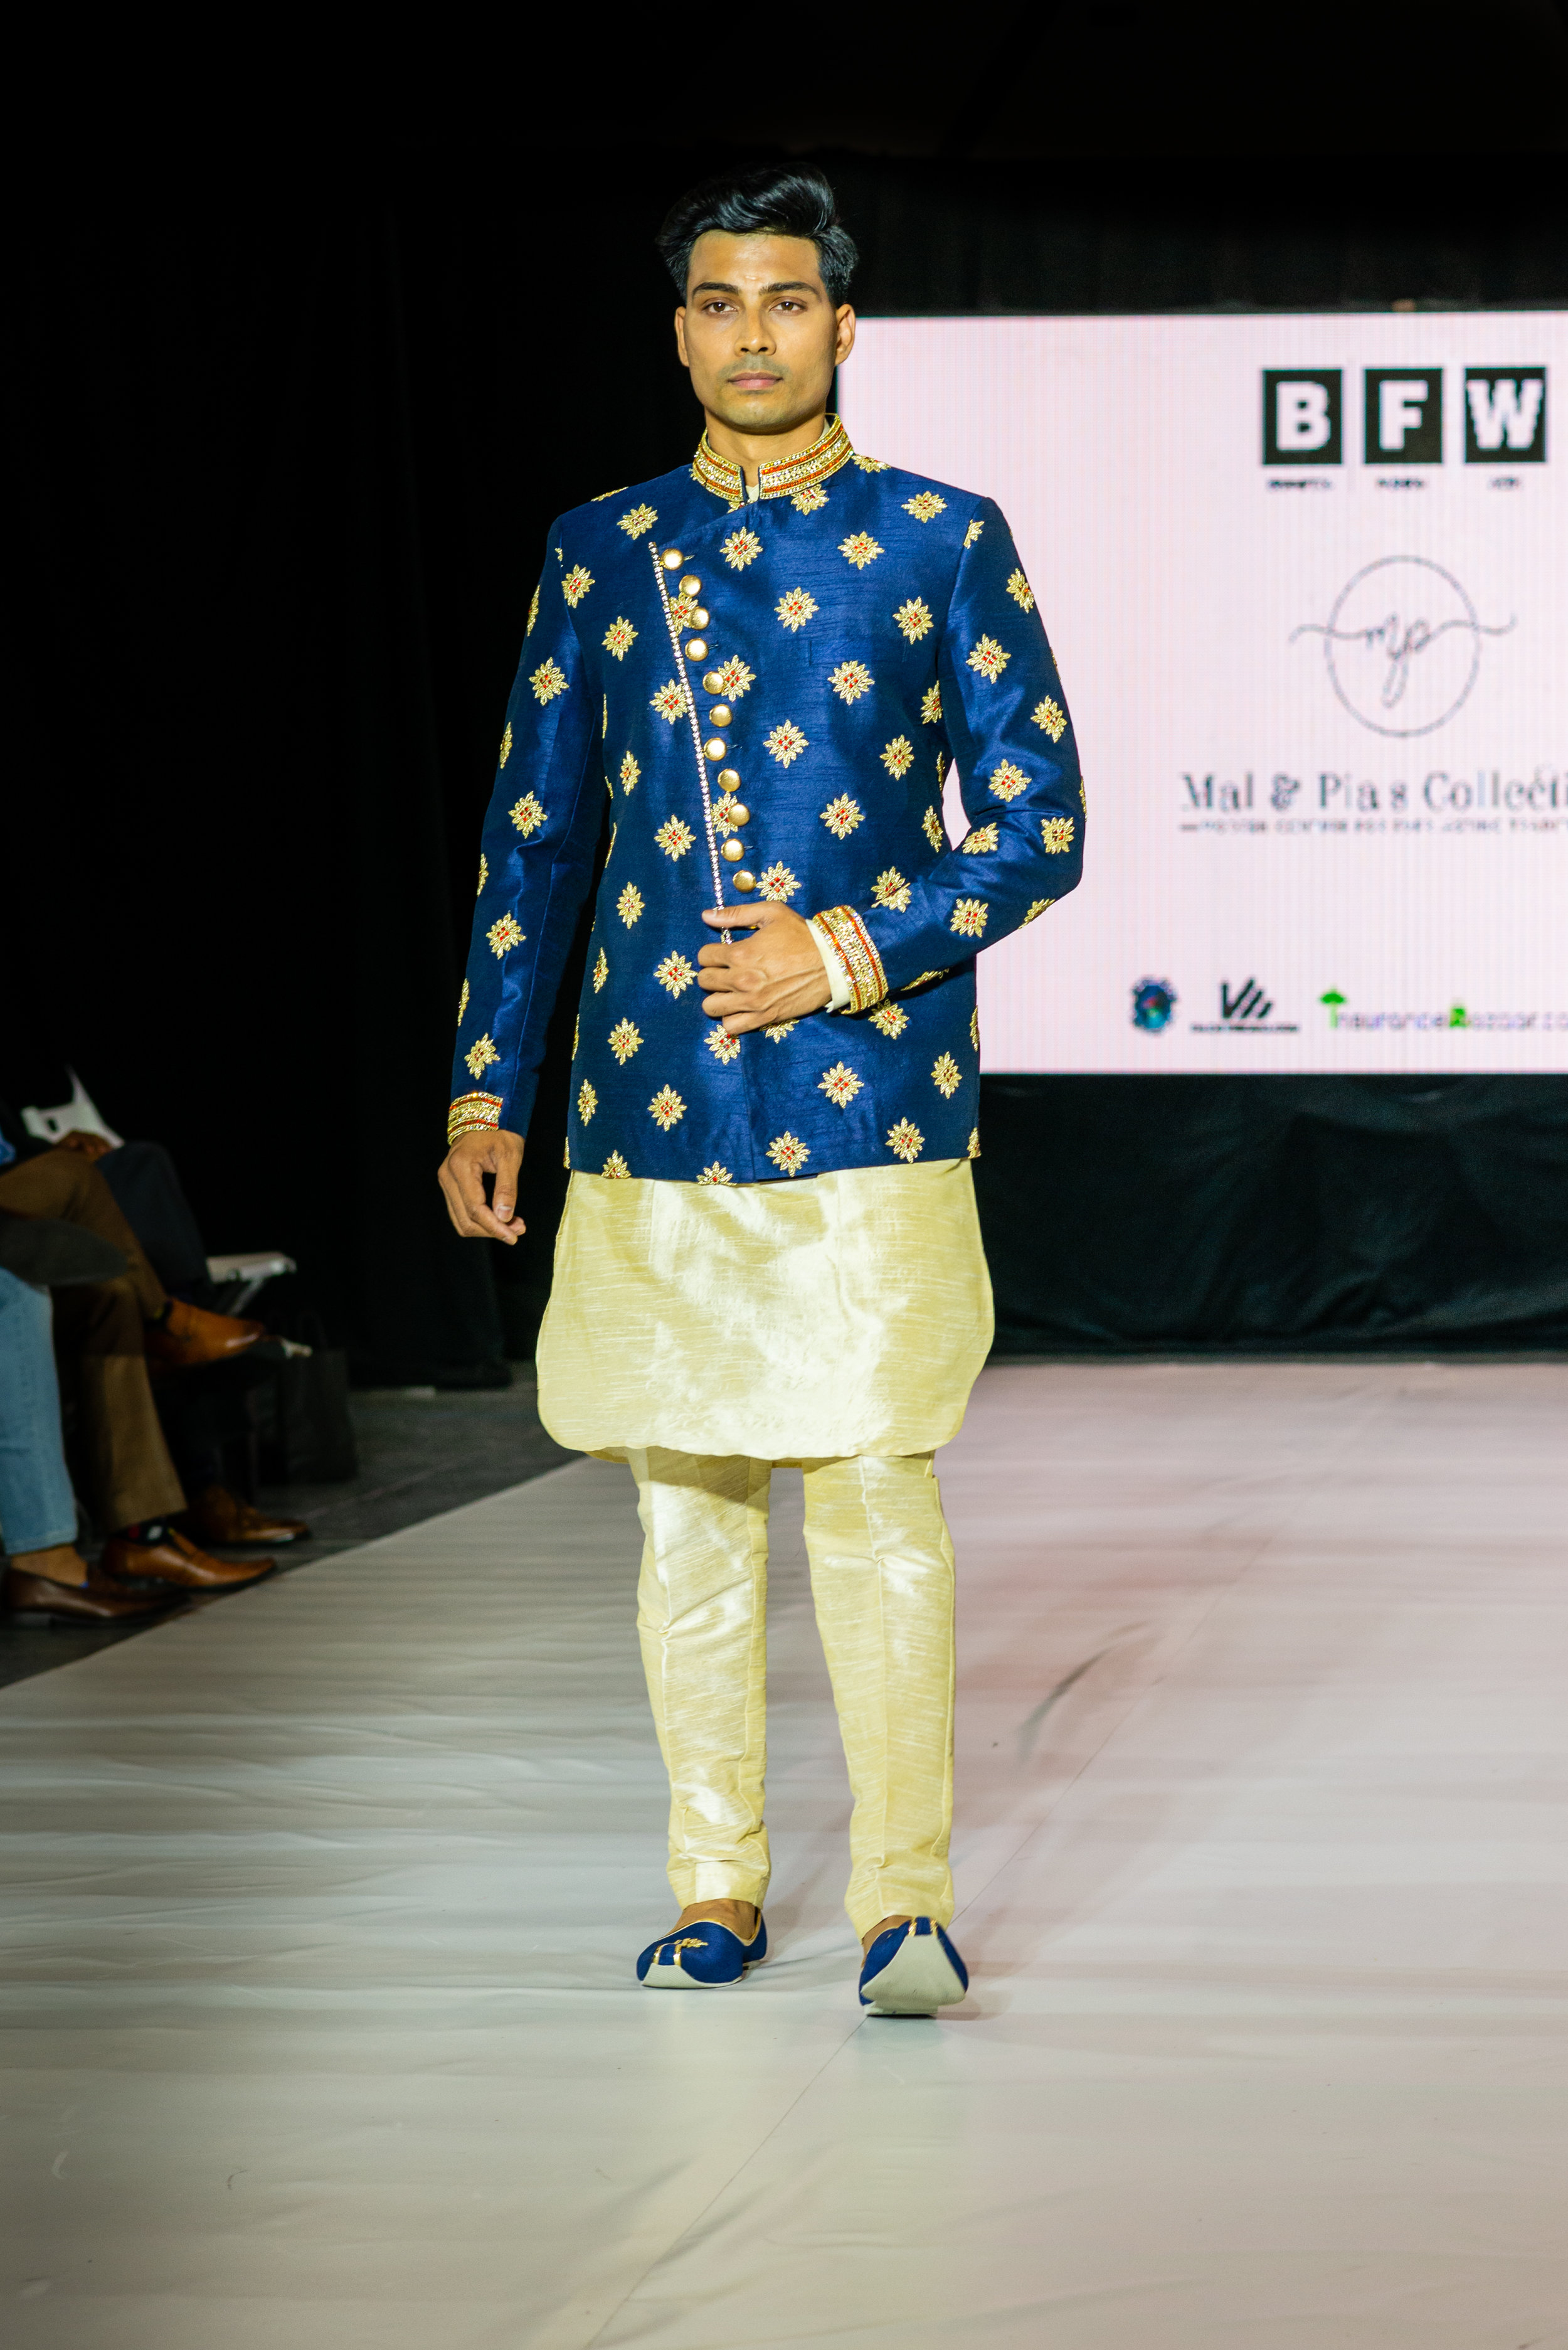 BFW12 -Mal and Pia's Collection-D8A_2318.jpg